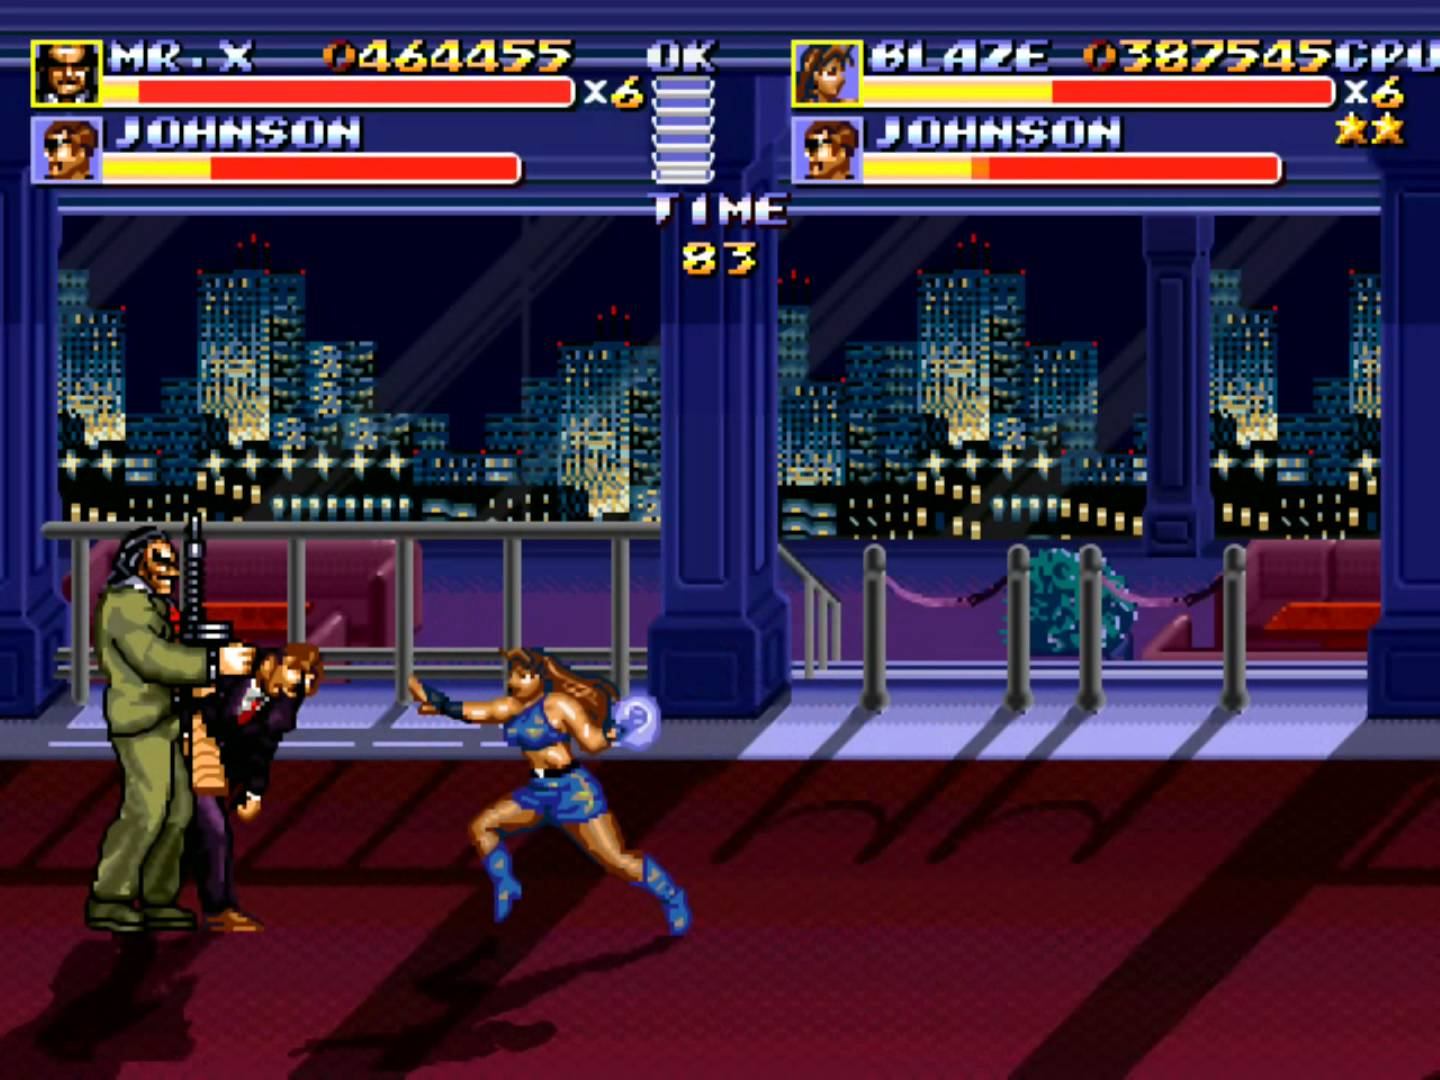 Streets Of Rage Remake V5 wallpapers, Video Game, HQ